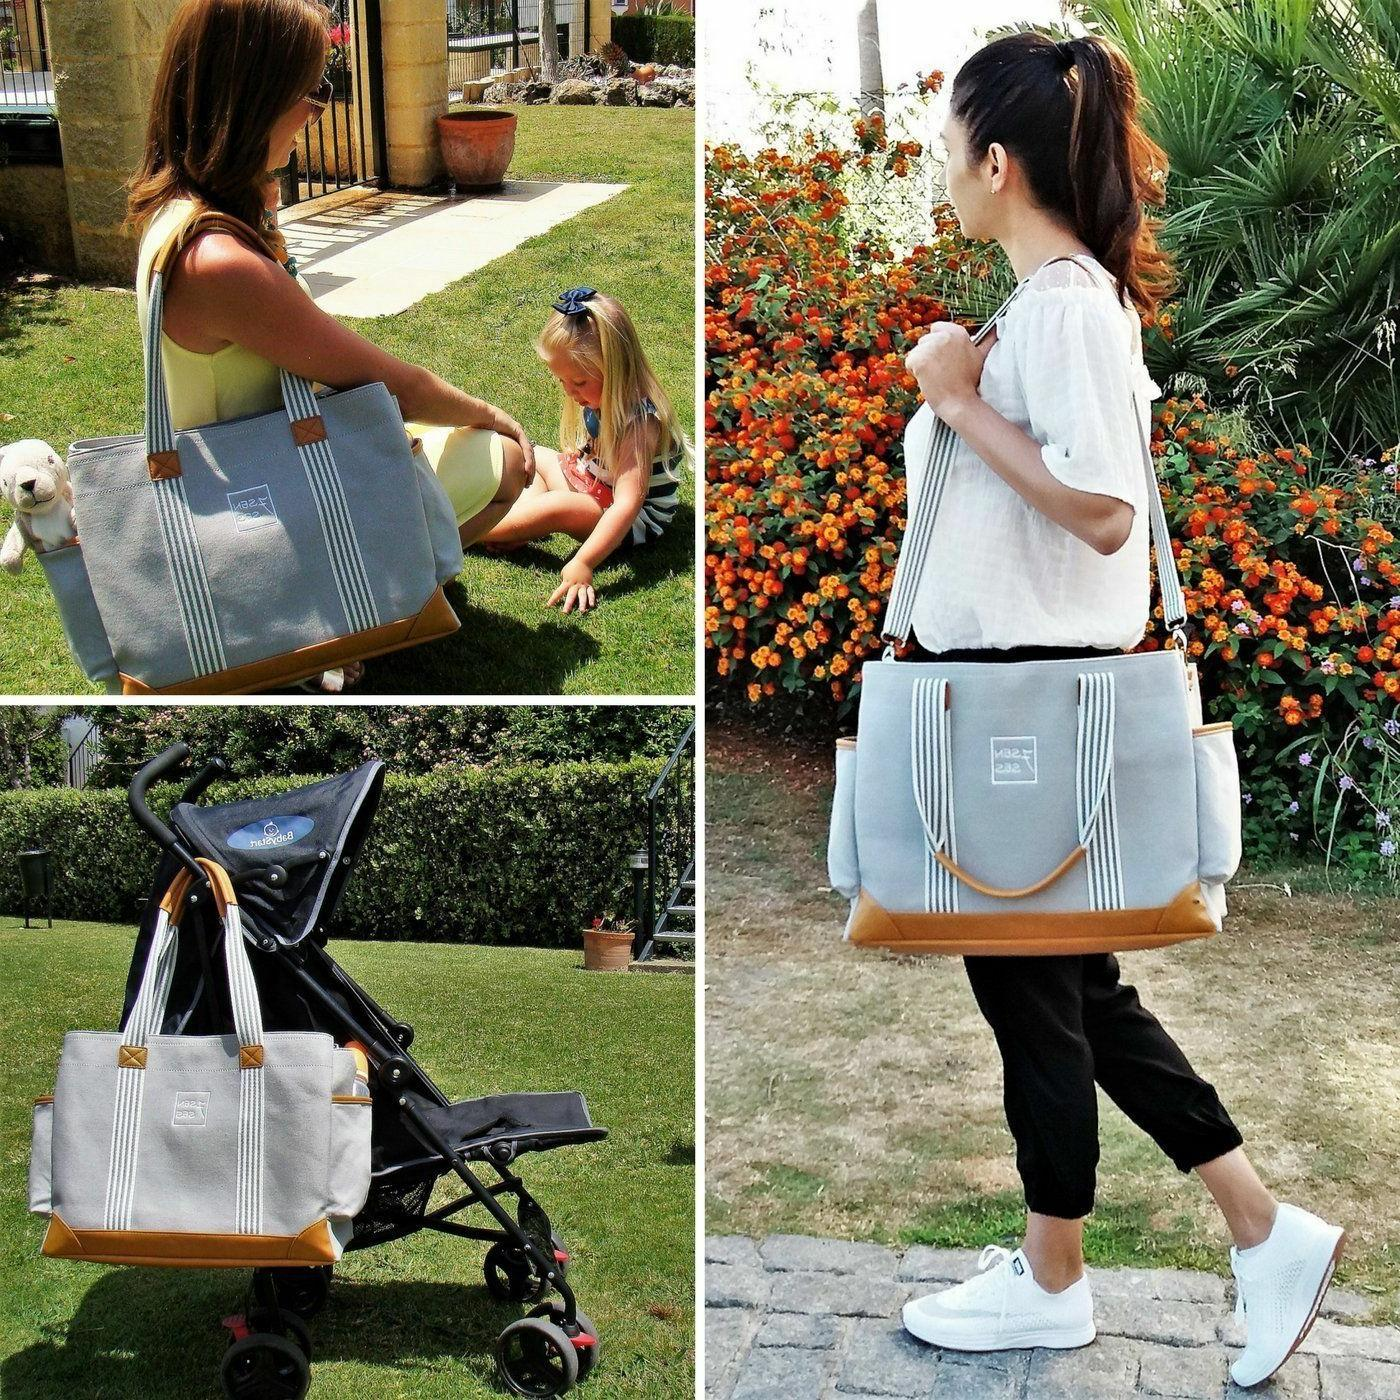 and - Large Tote AMZ 5-Star!